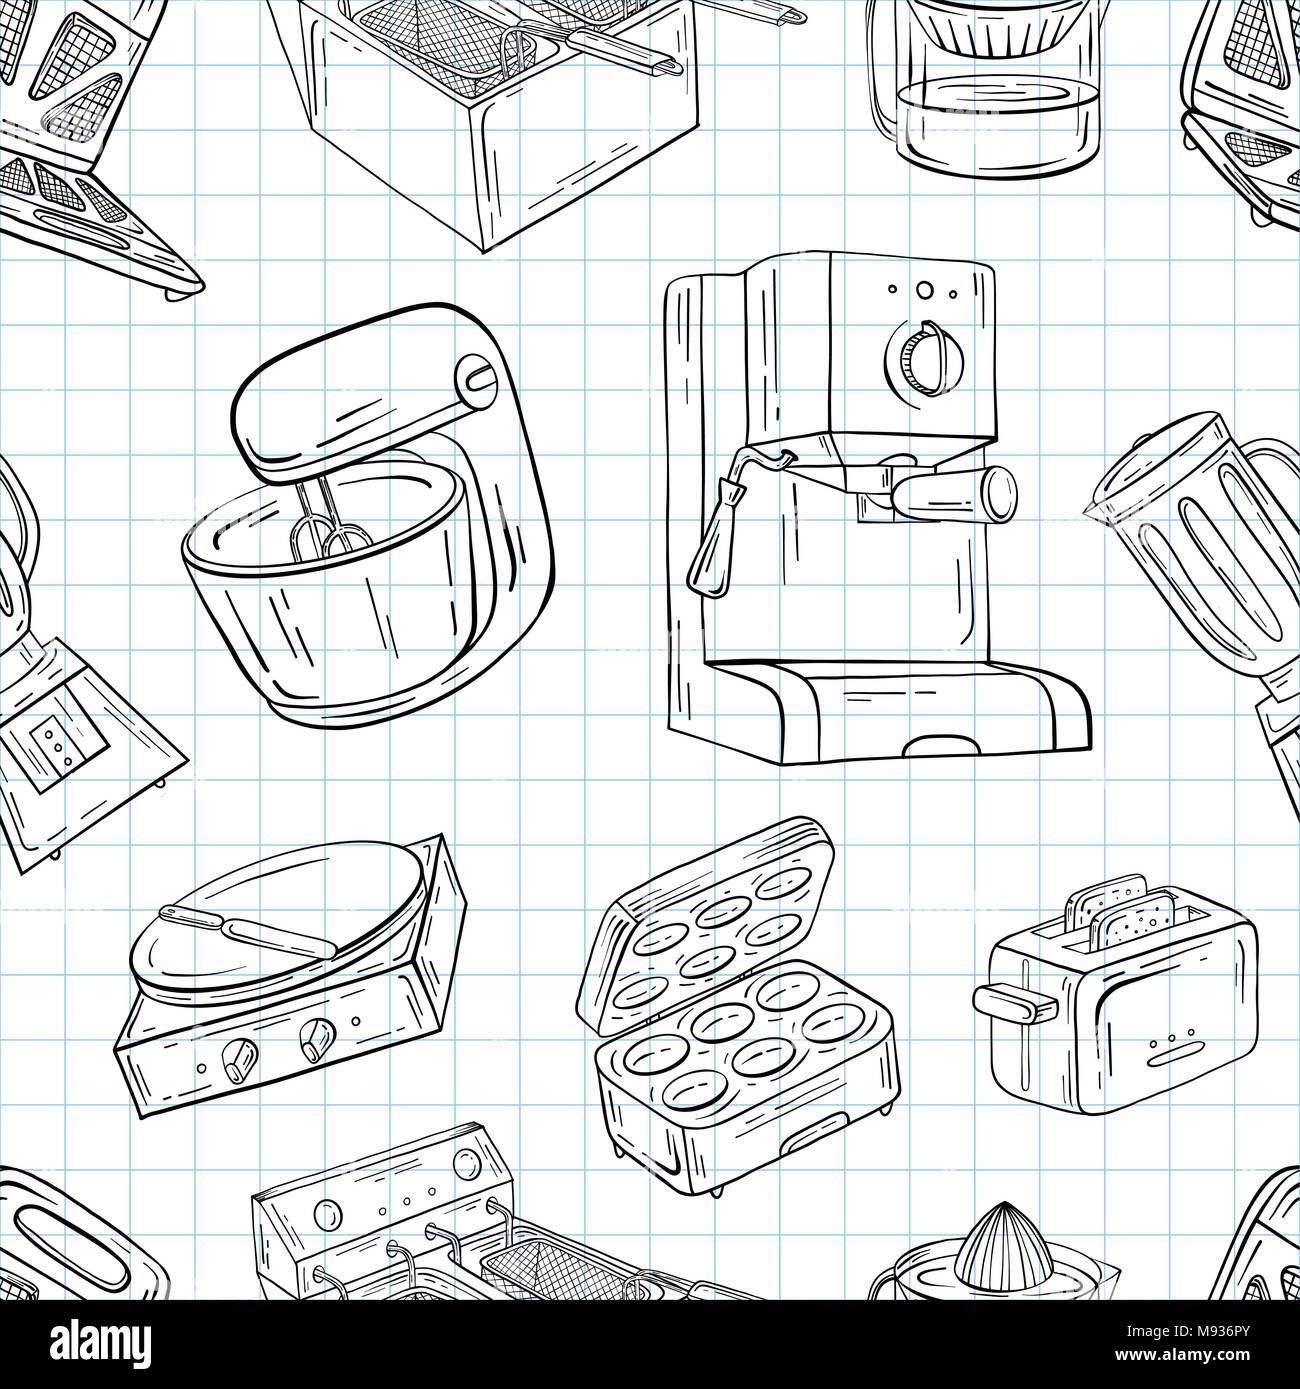 Household Appliances For The Kitchen Cafe And Restaurant Vector Illustration Of Seamless Pattern In Hand Drawn Graphics Meat Grinder Juicer Oven Stock Vector Image Art Alamy